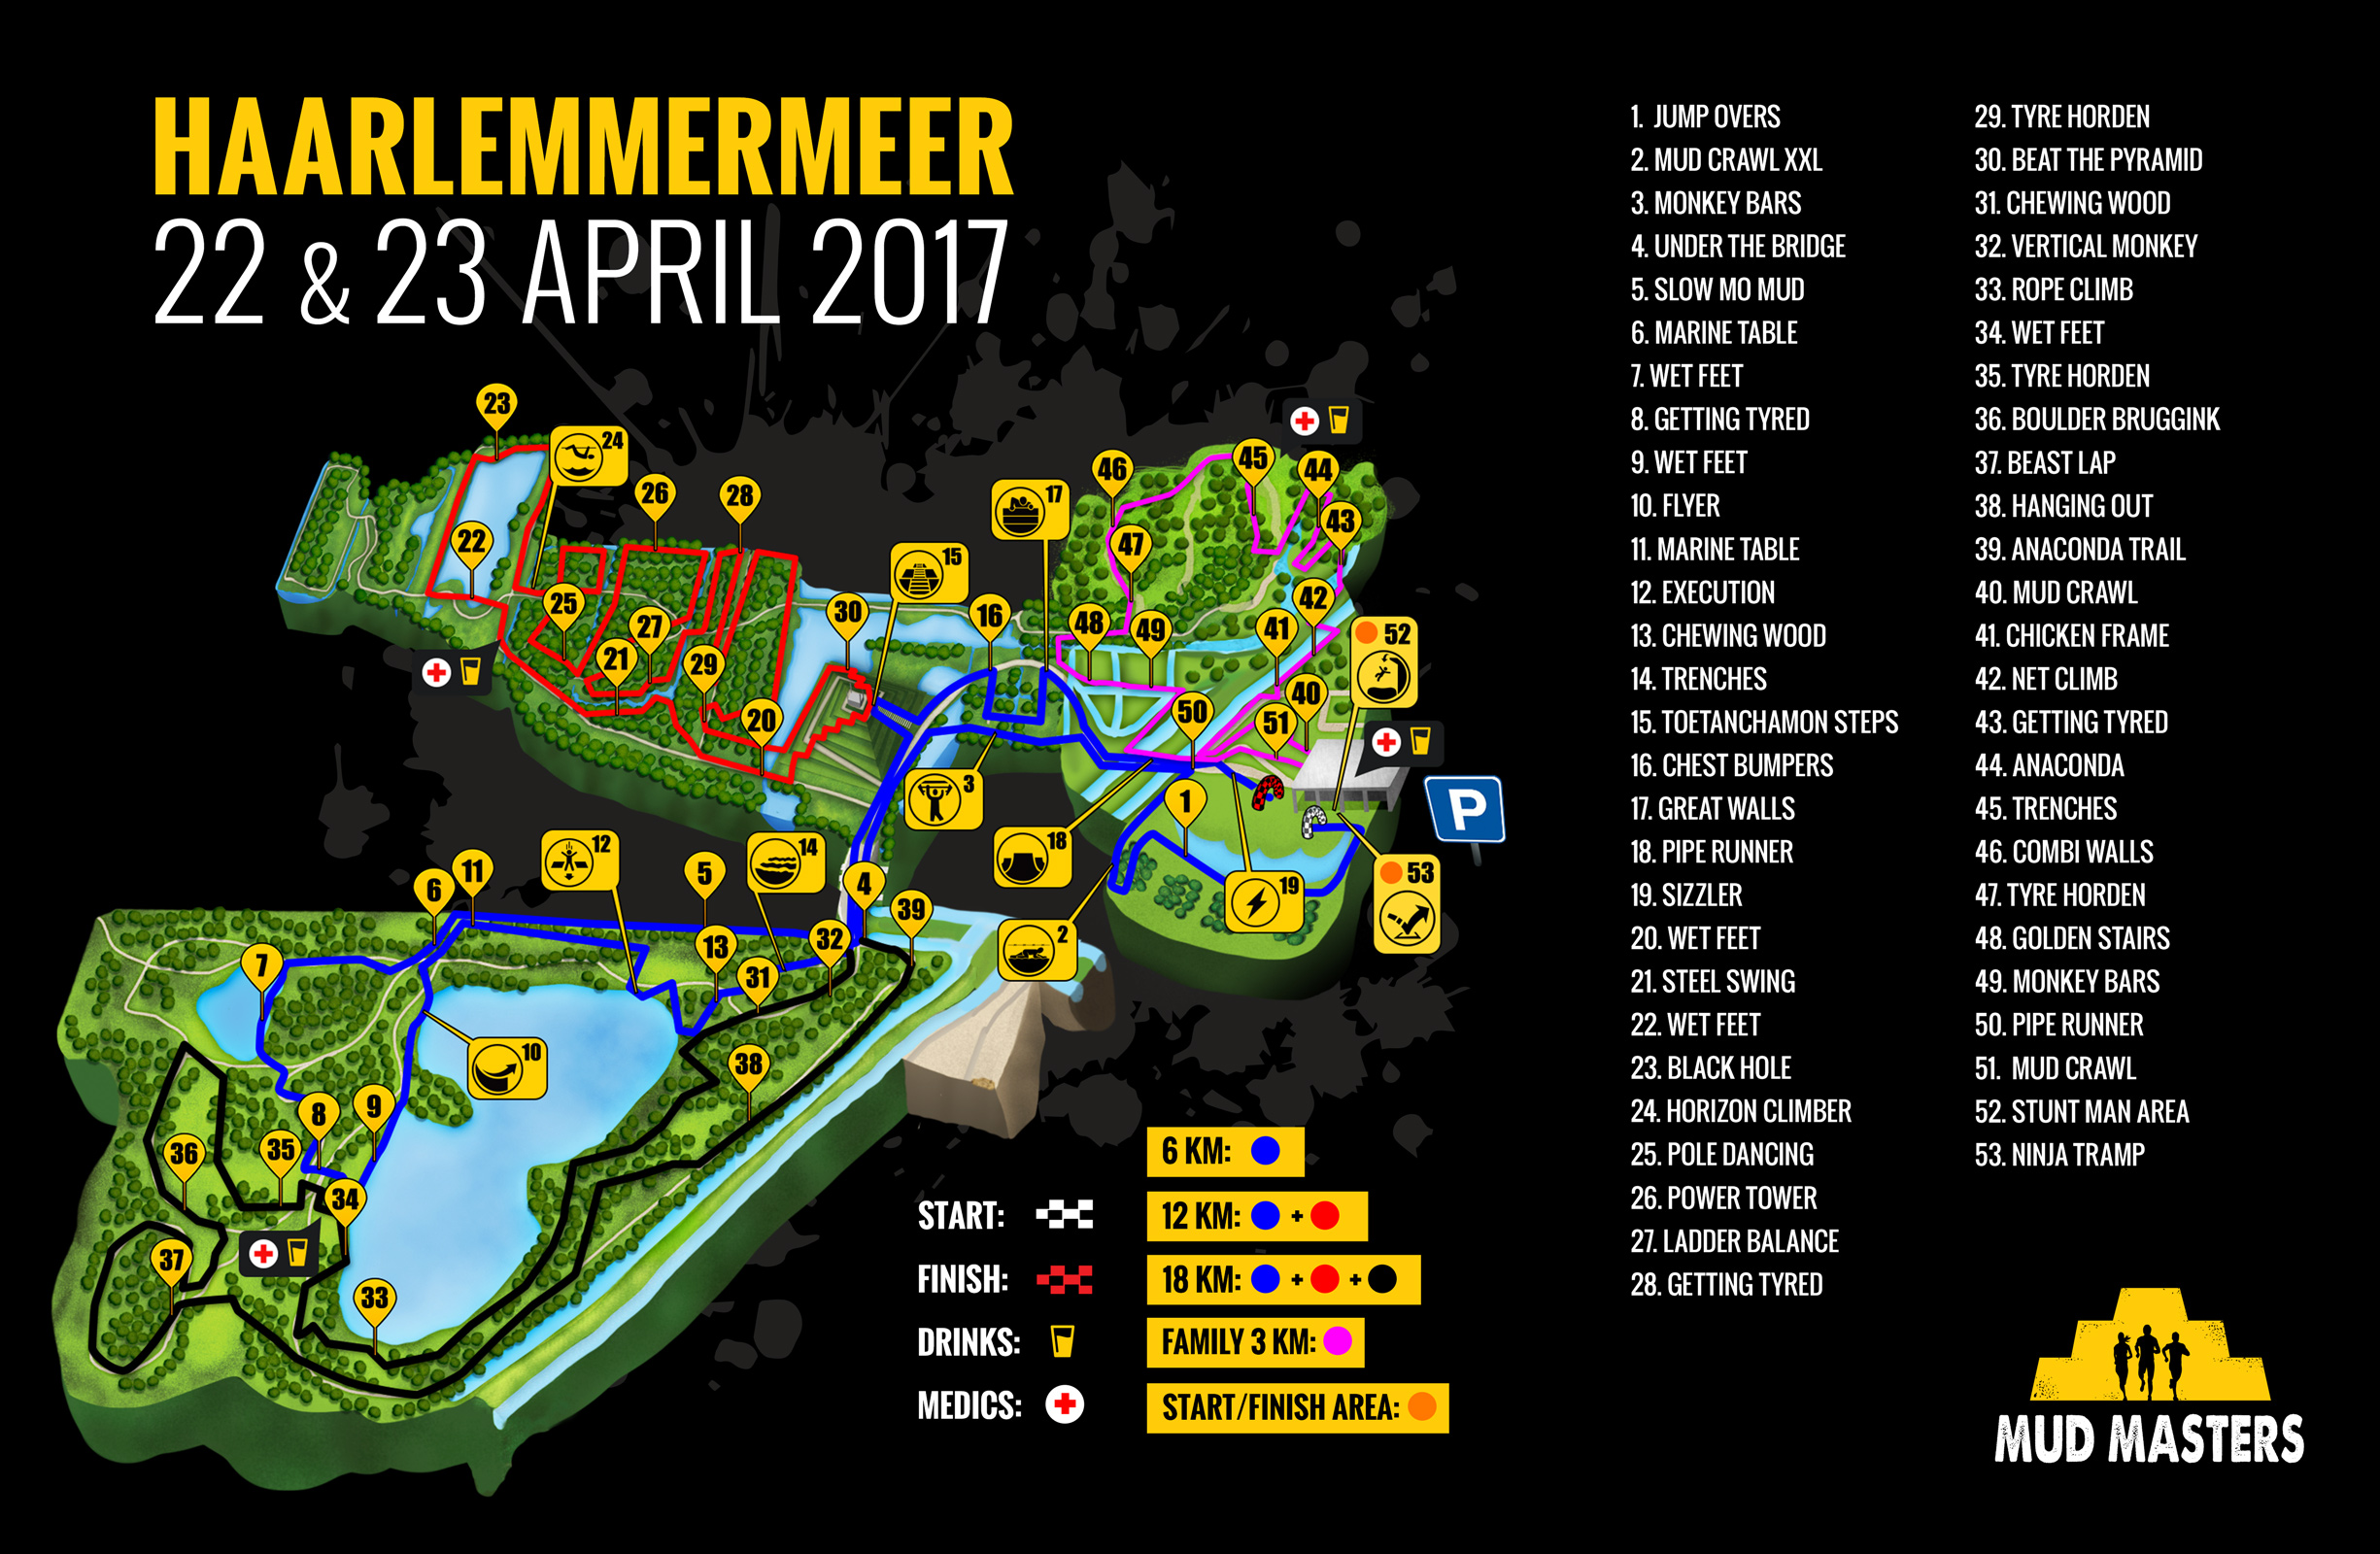 Haarlemmermeer 2017 - Mud Masters Obstacle Run